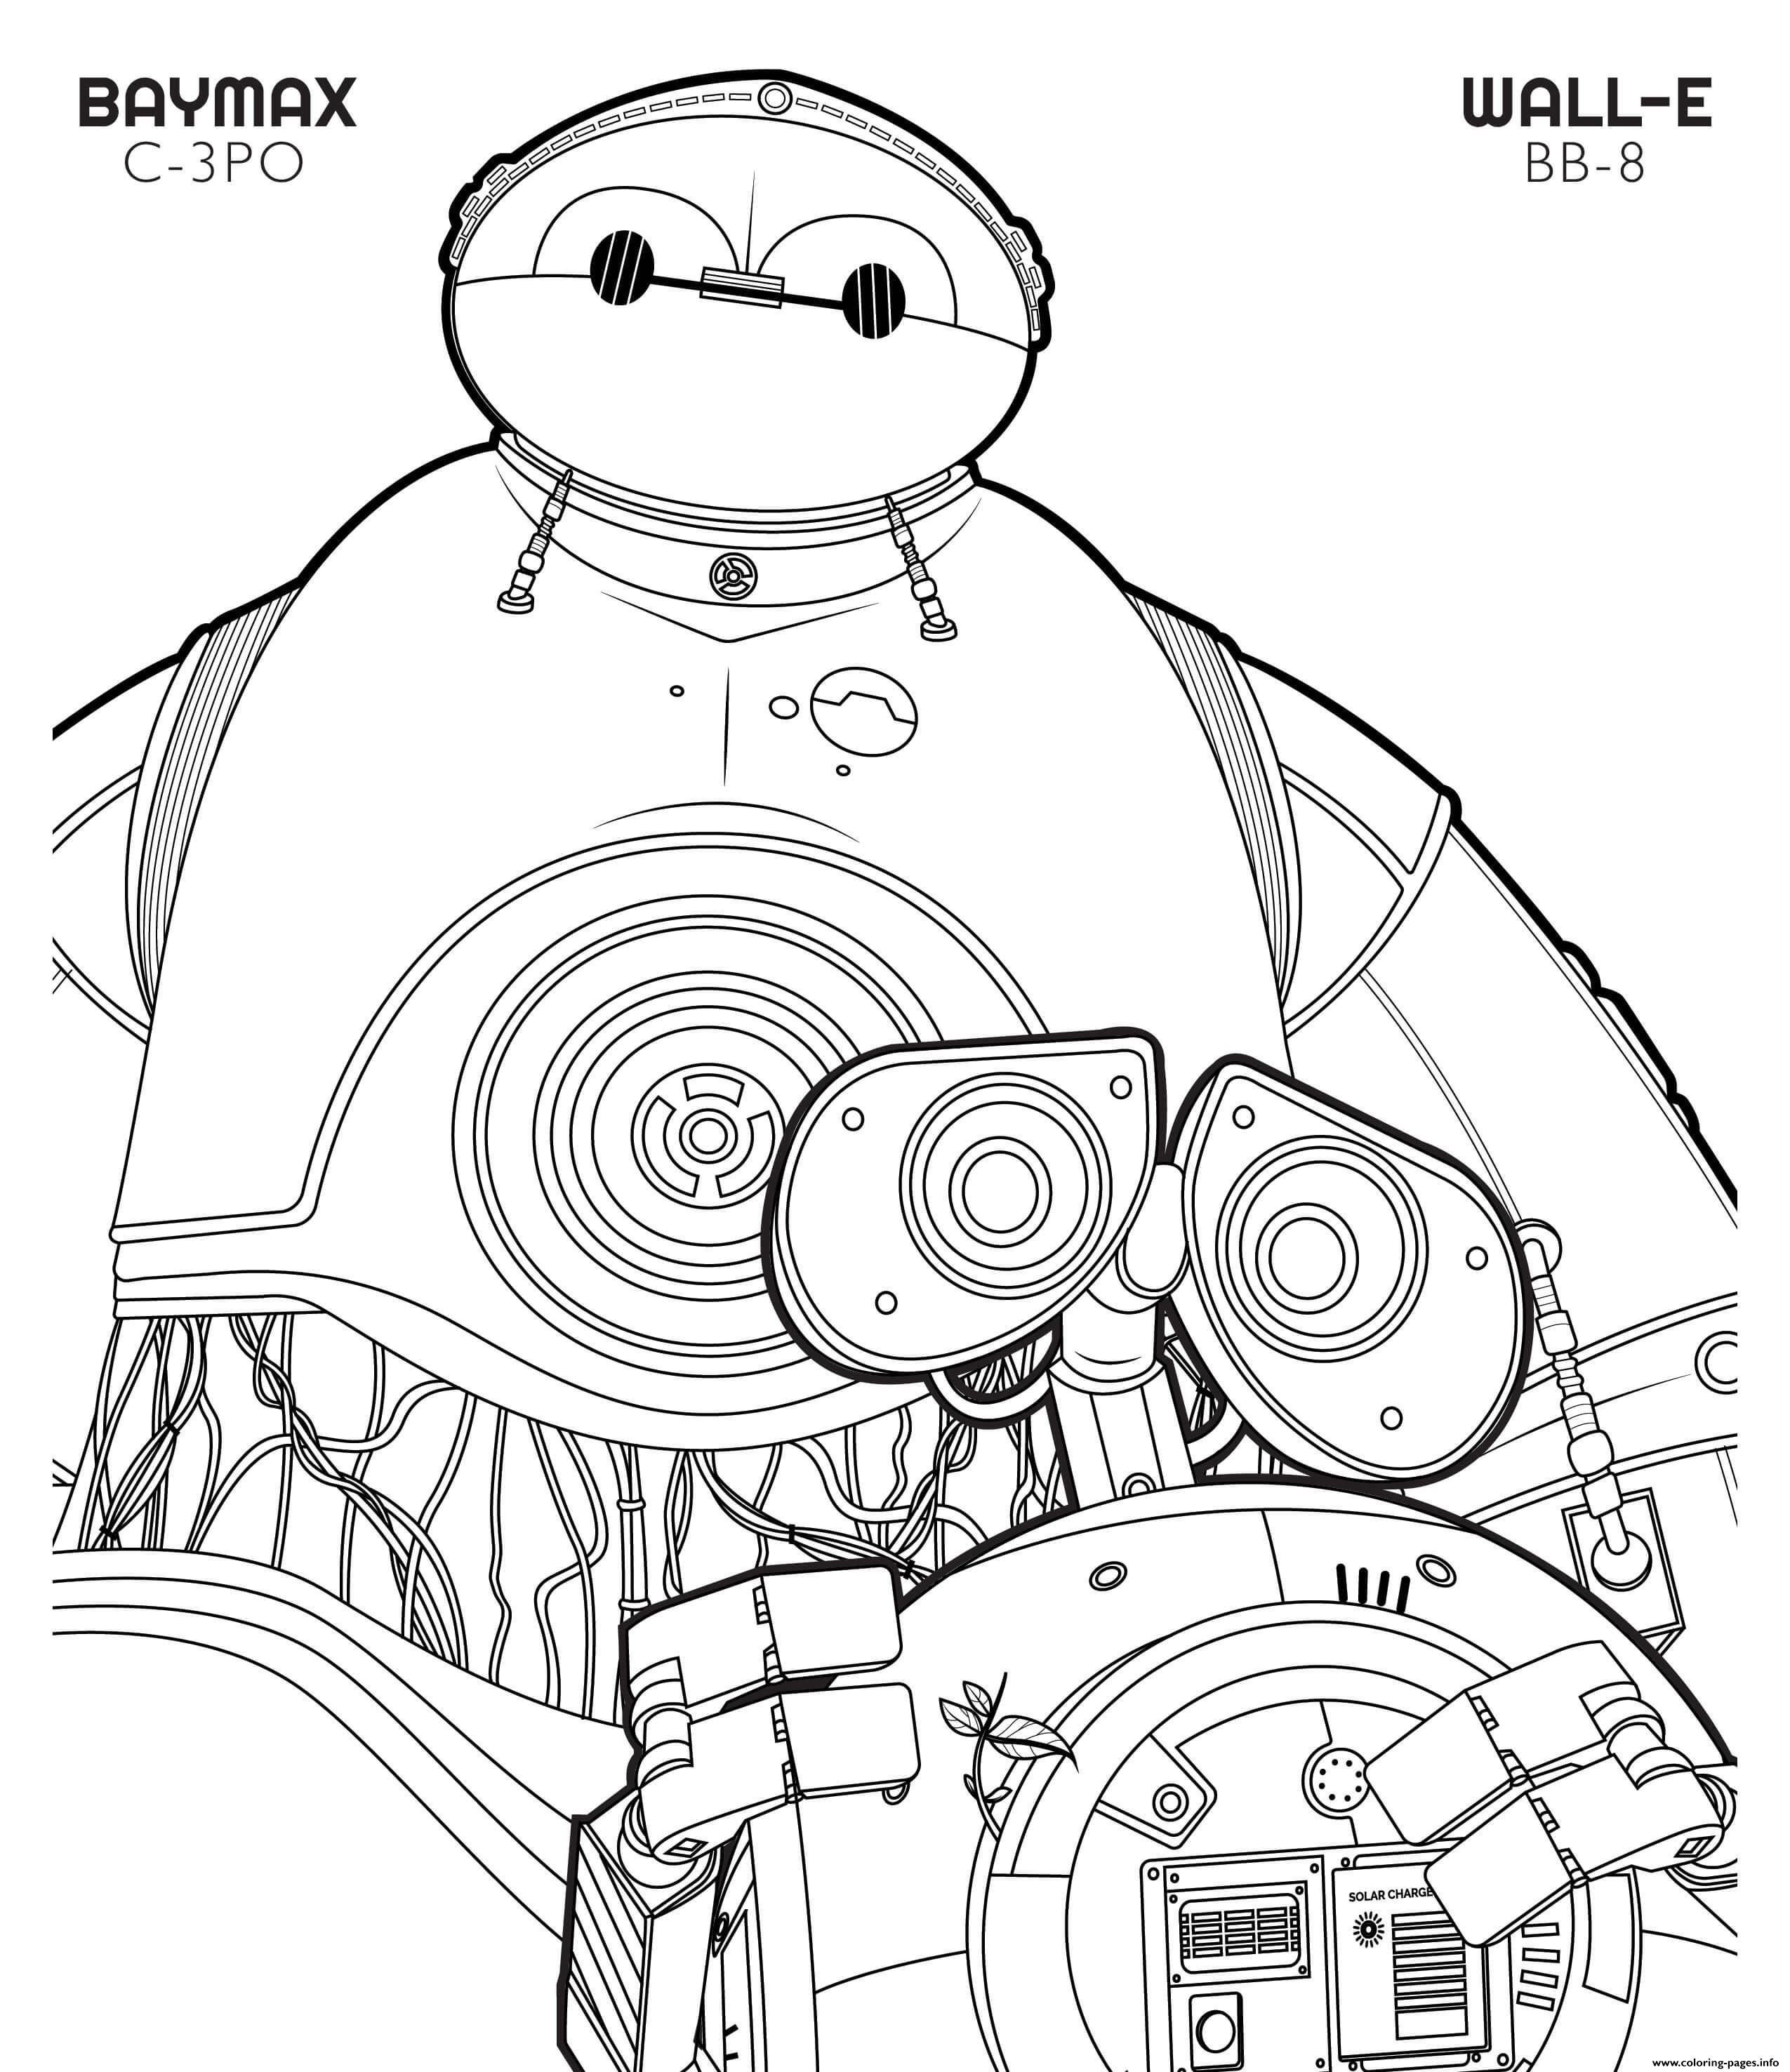 Bb 8 Wall E And C 3po Baymax Disney Star Wars coloring pages